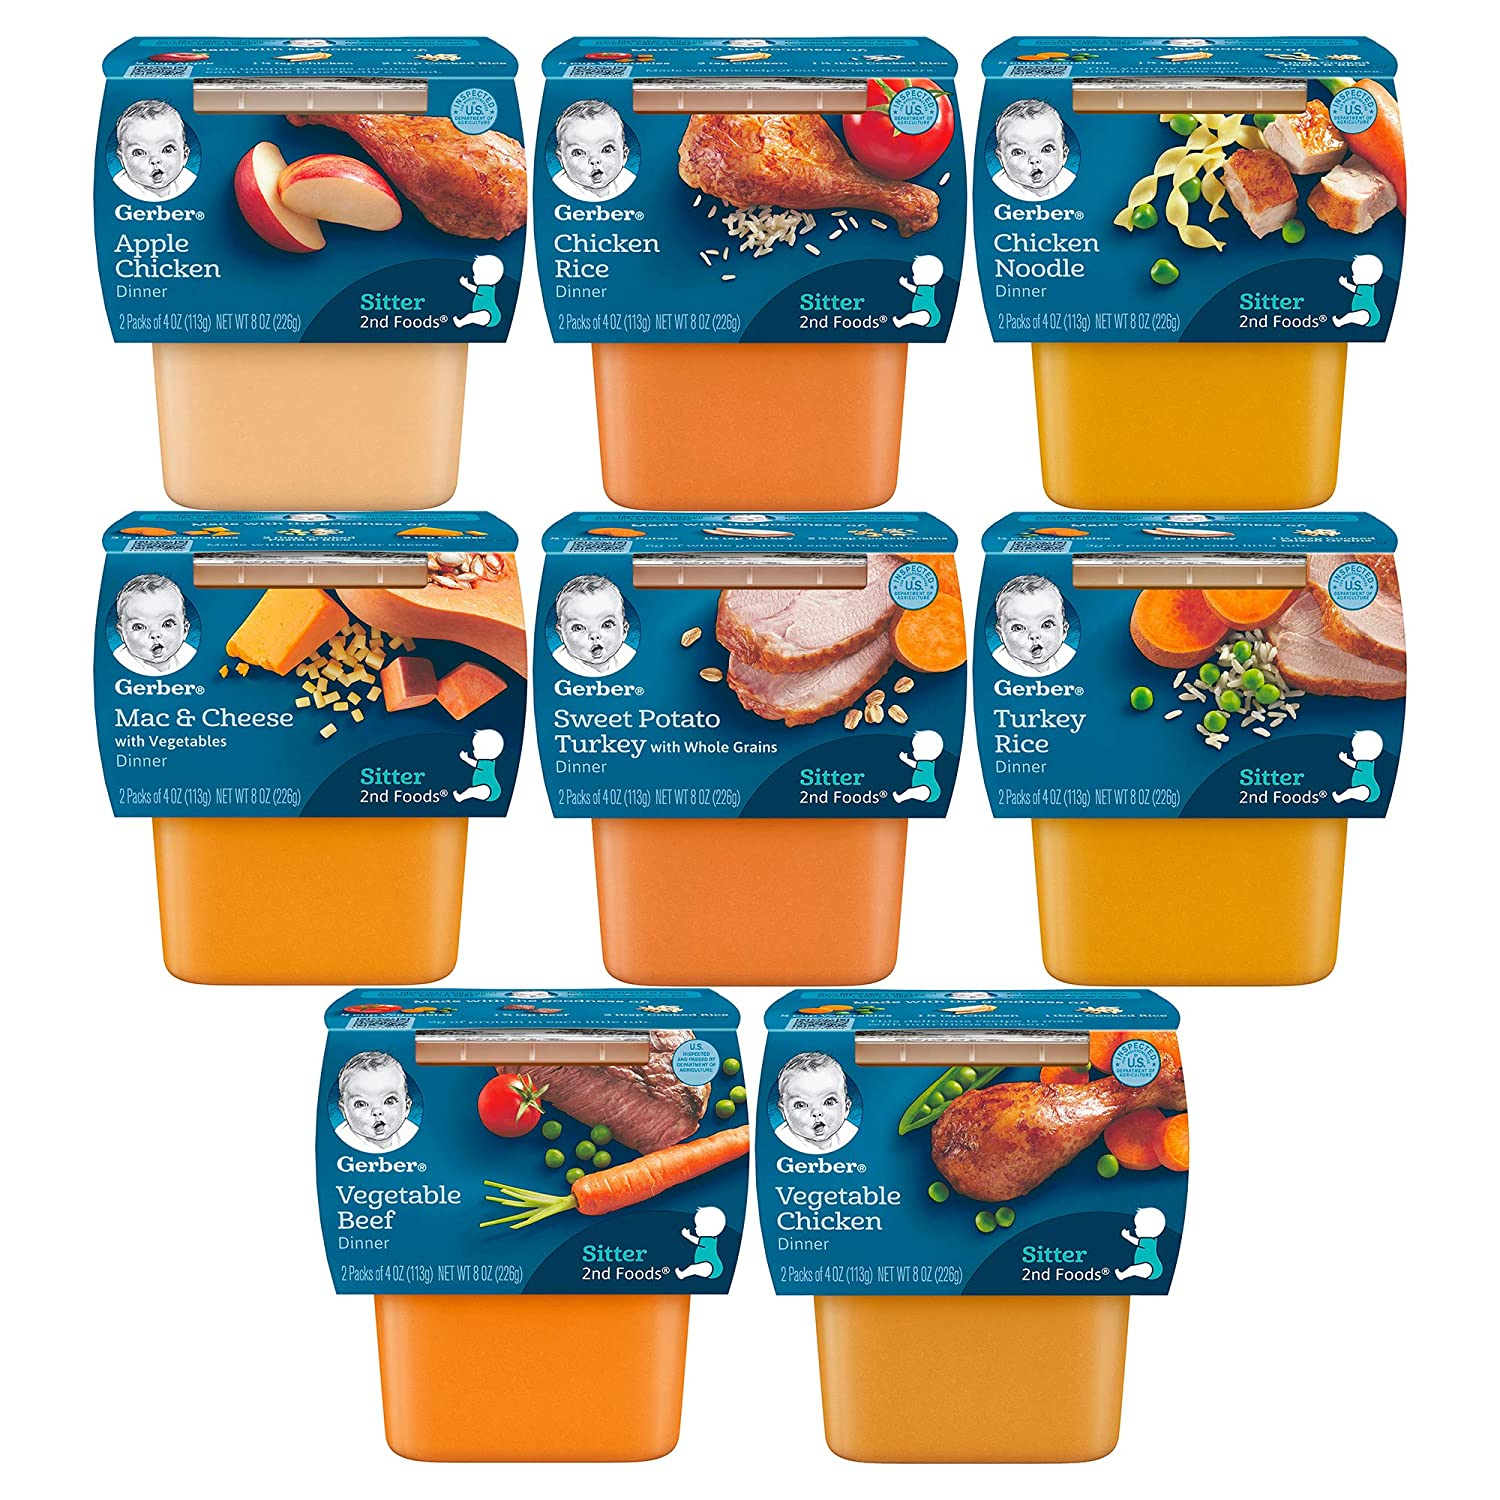 Gerber 2nd Foods Tubs Dinners Variety Pack, 2 Turkey Rice, 2 Sweet Potato Turkey, 2 Chicken Noodle, 2 Chicken Rice, 2 Apple Chicken, 2 Mac & Cheese, 2 Vegetable Chicken, 2 Vegetable Beef, 16 CT